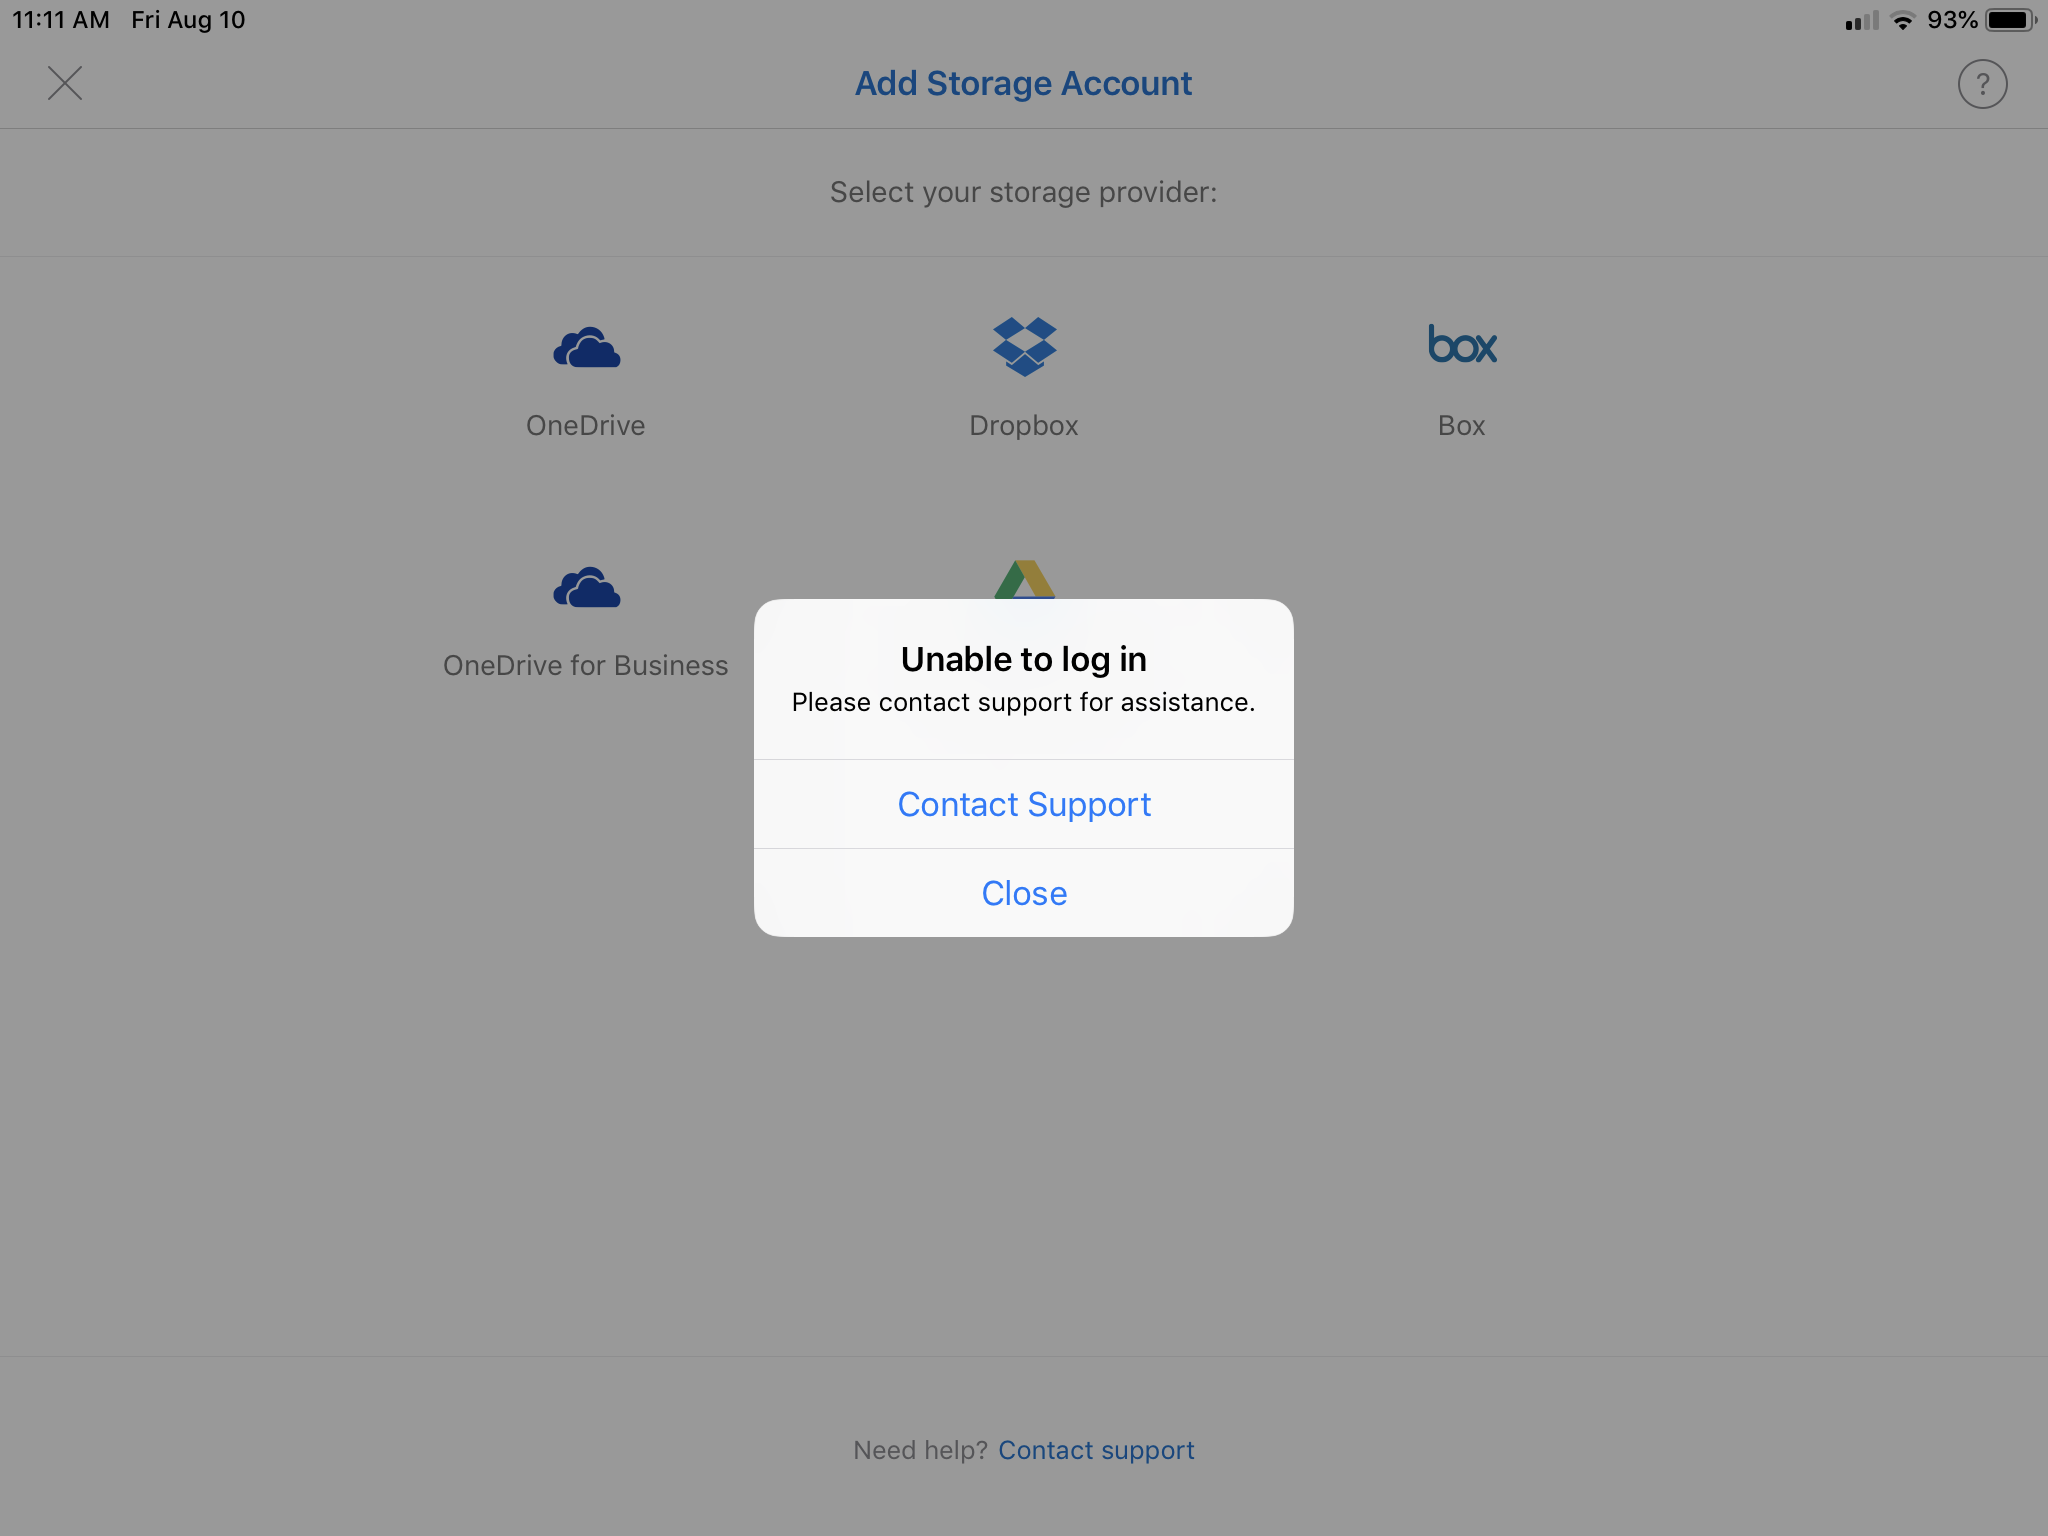 Outlook for IOS- Add Storage fails when adding a Google